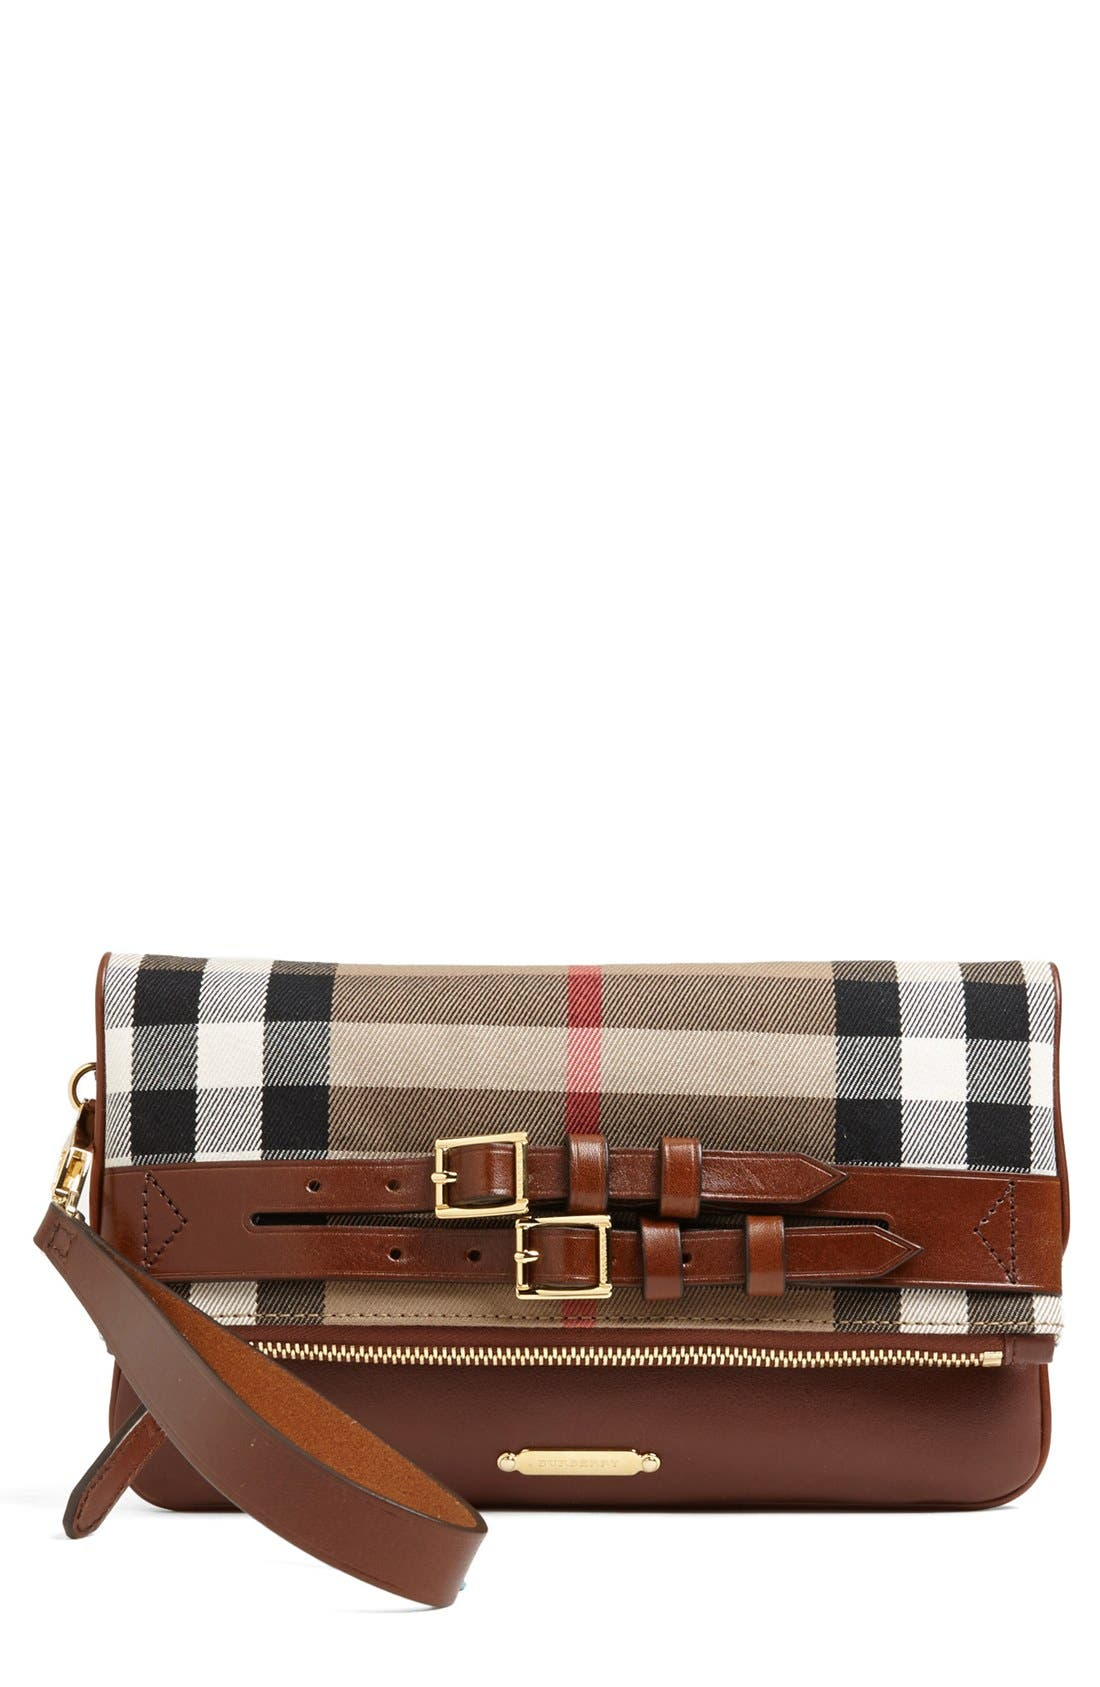 Main Image - Burberry 'Adeline' Belted Foldover Flap Clutch